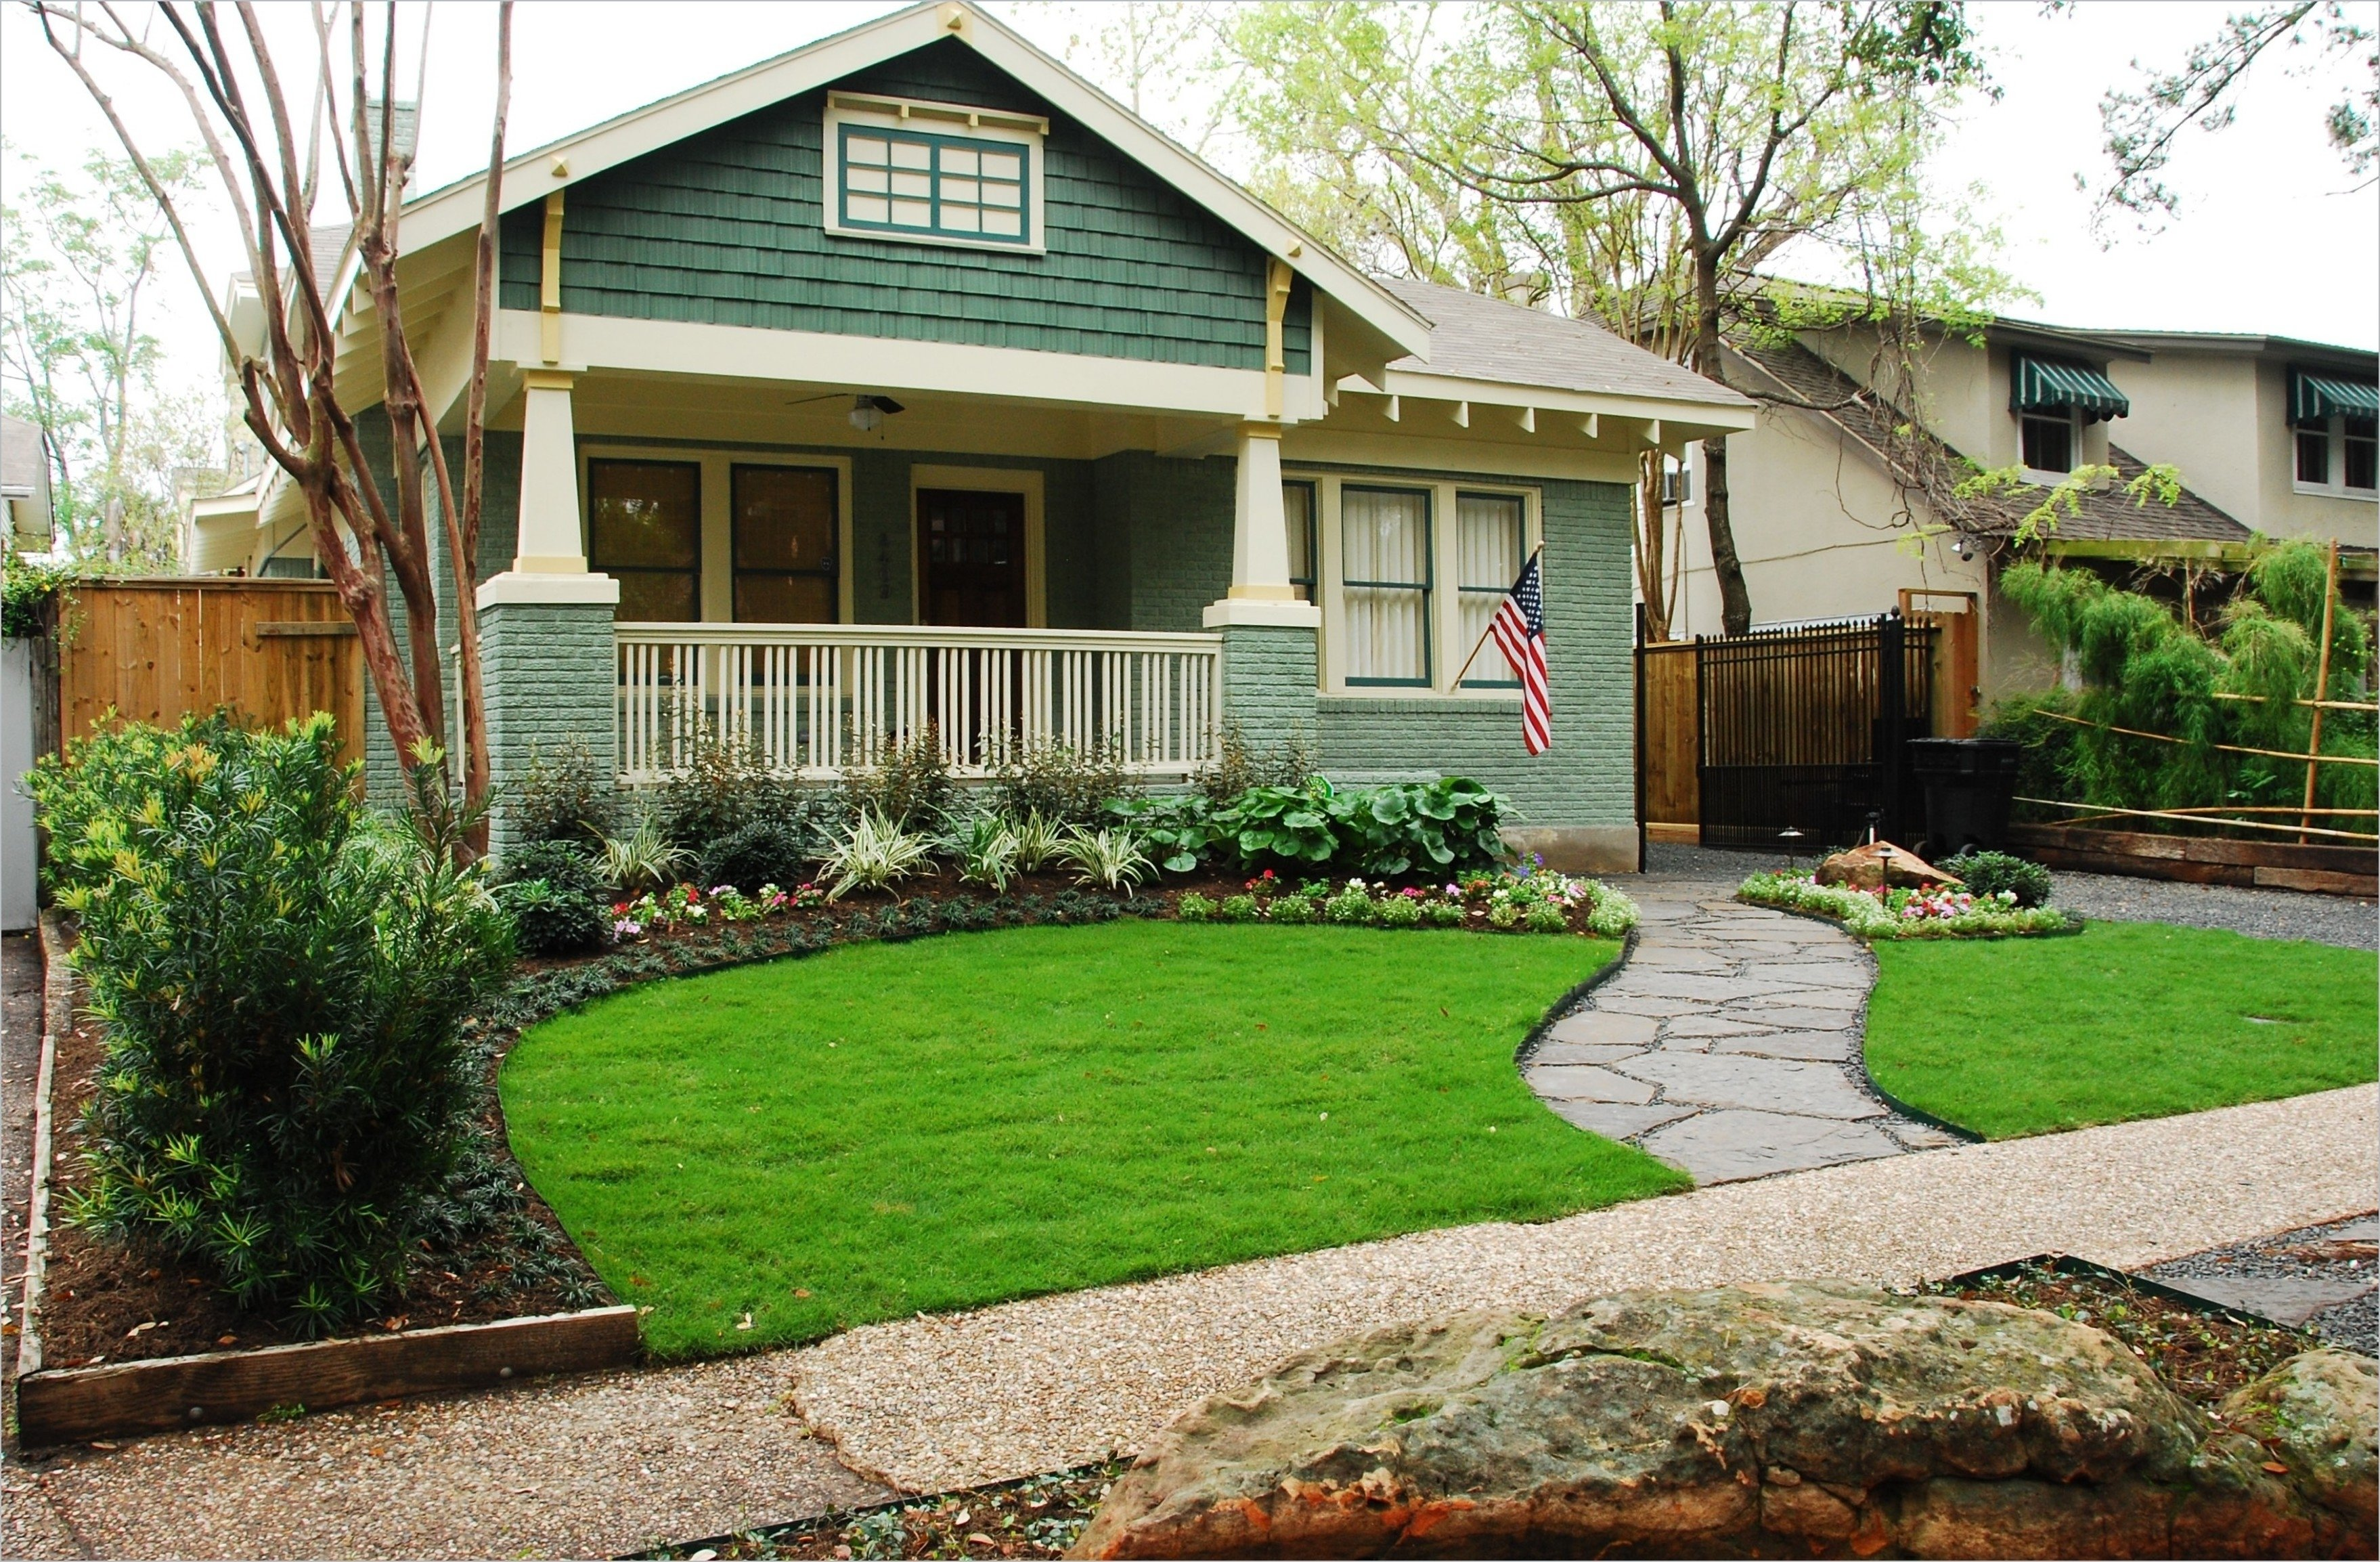 10 Attractive Low Maintenance Landscaping Ideas For Front Yard low maintenance landscaping plants landscape david morello within 1 2021